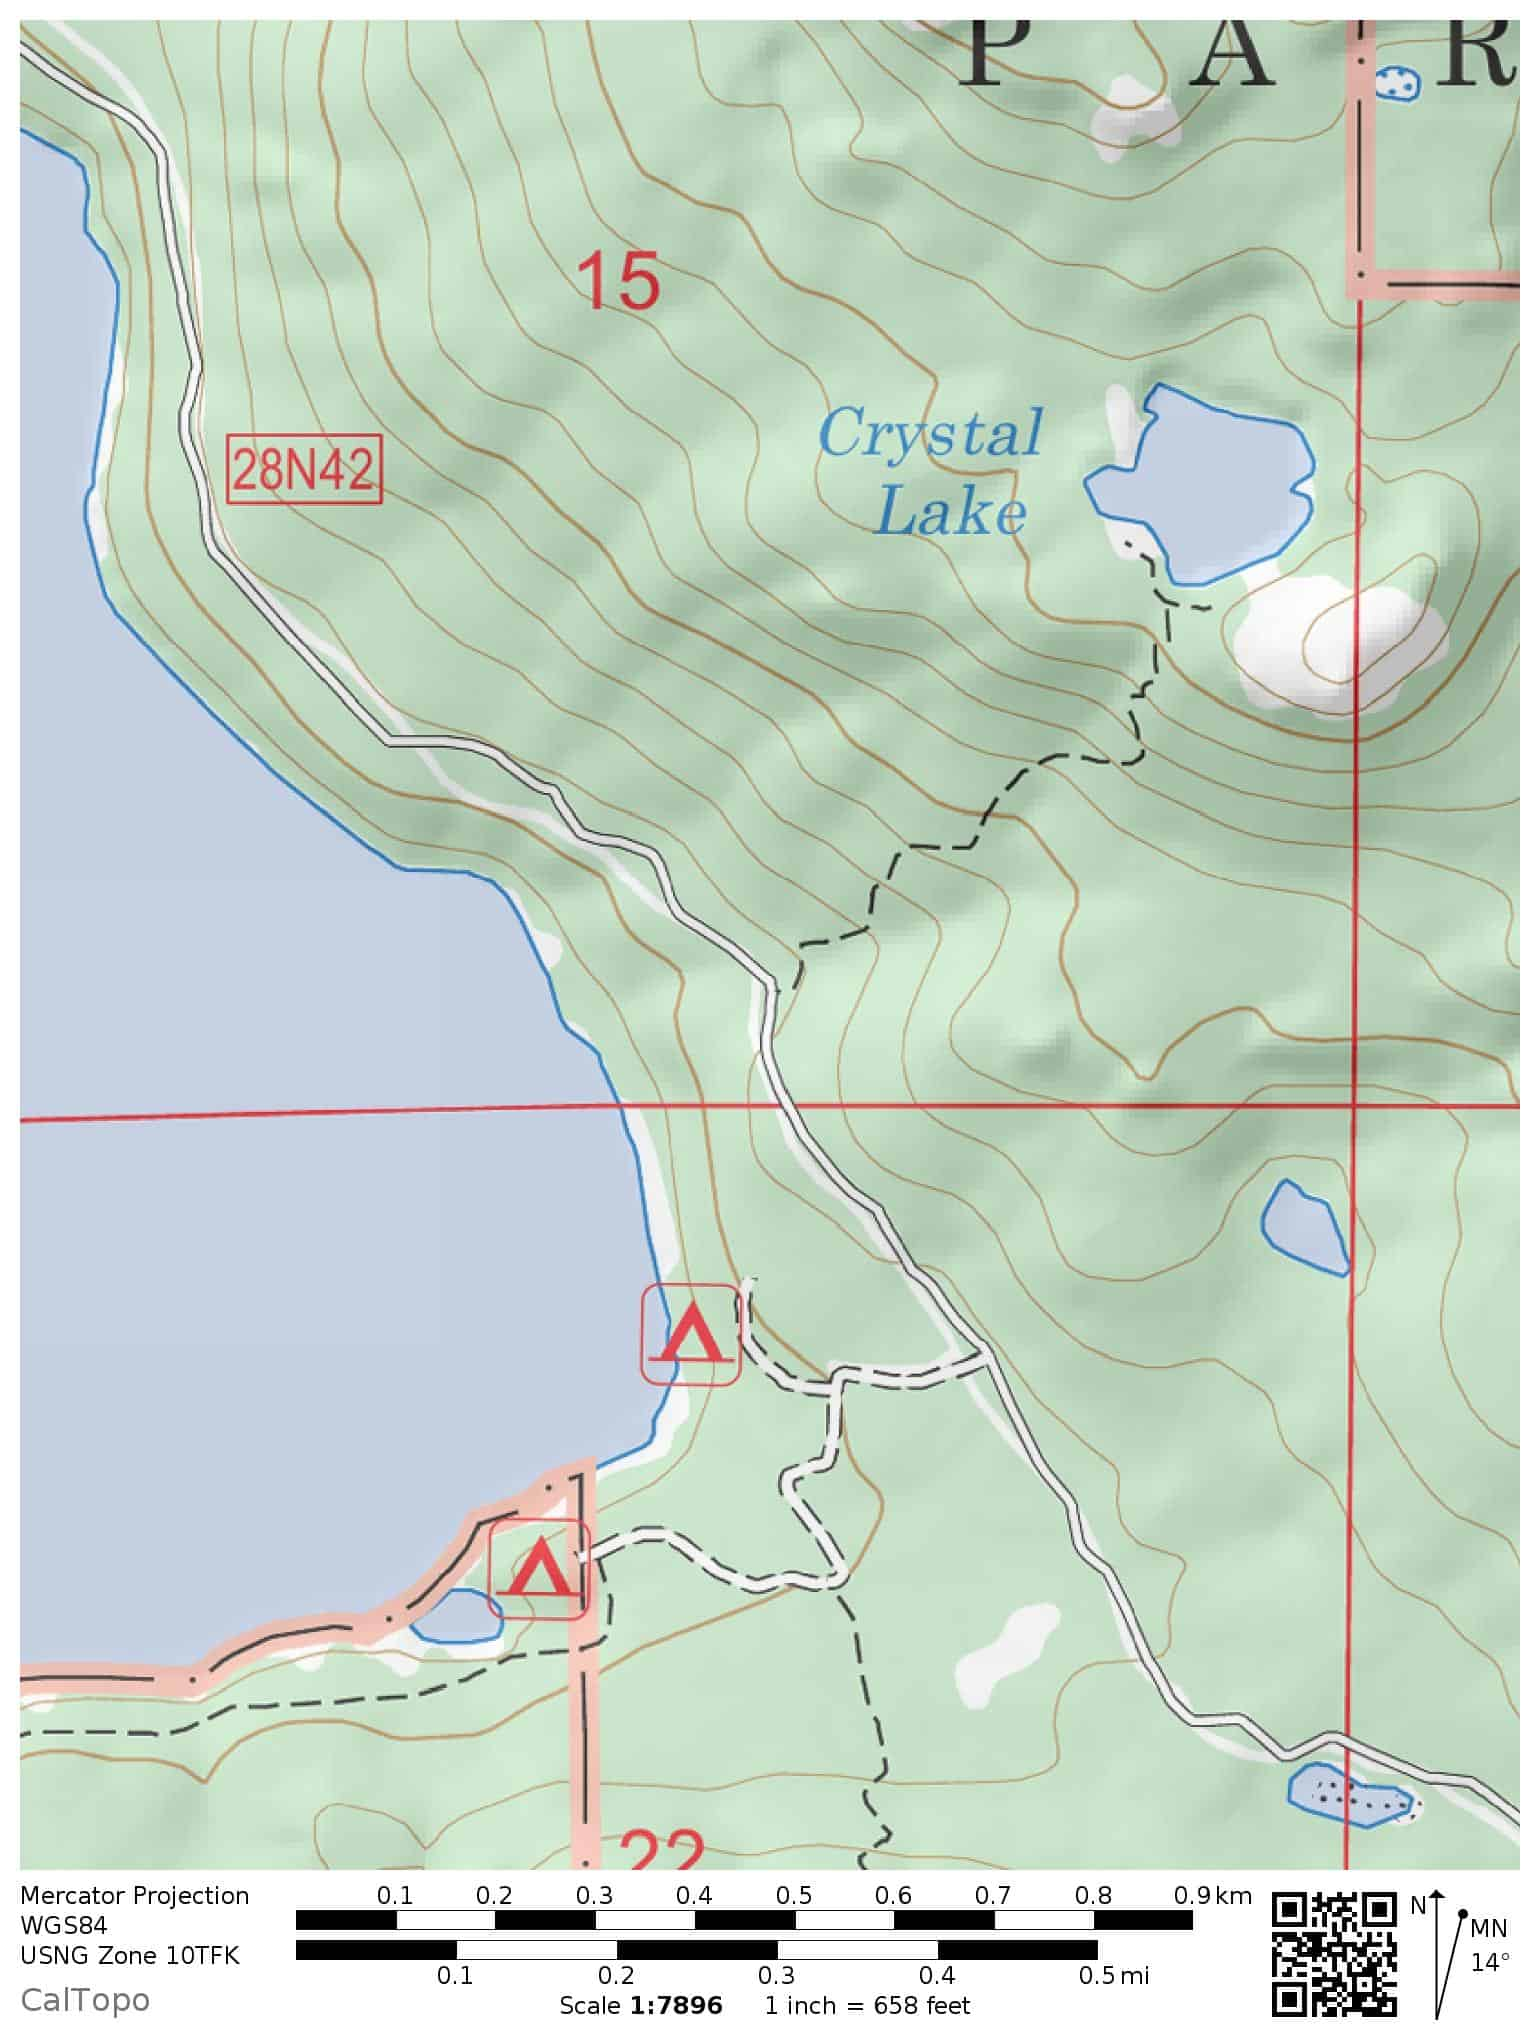 Trail map for hiking to Crystal Lake, which is near Juniper Lake in eastern Lassen Volcanic National Park.